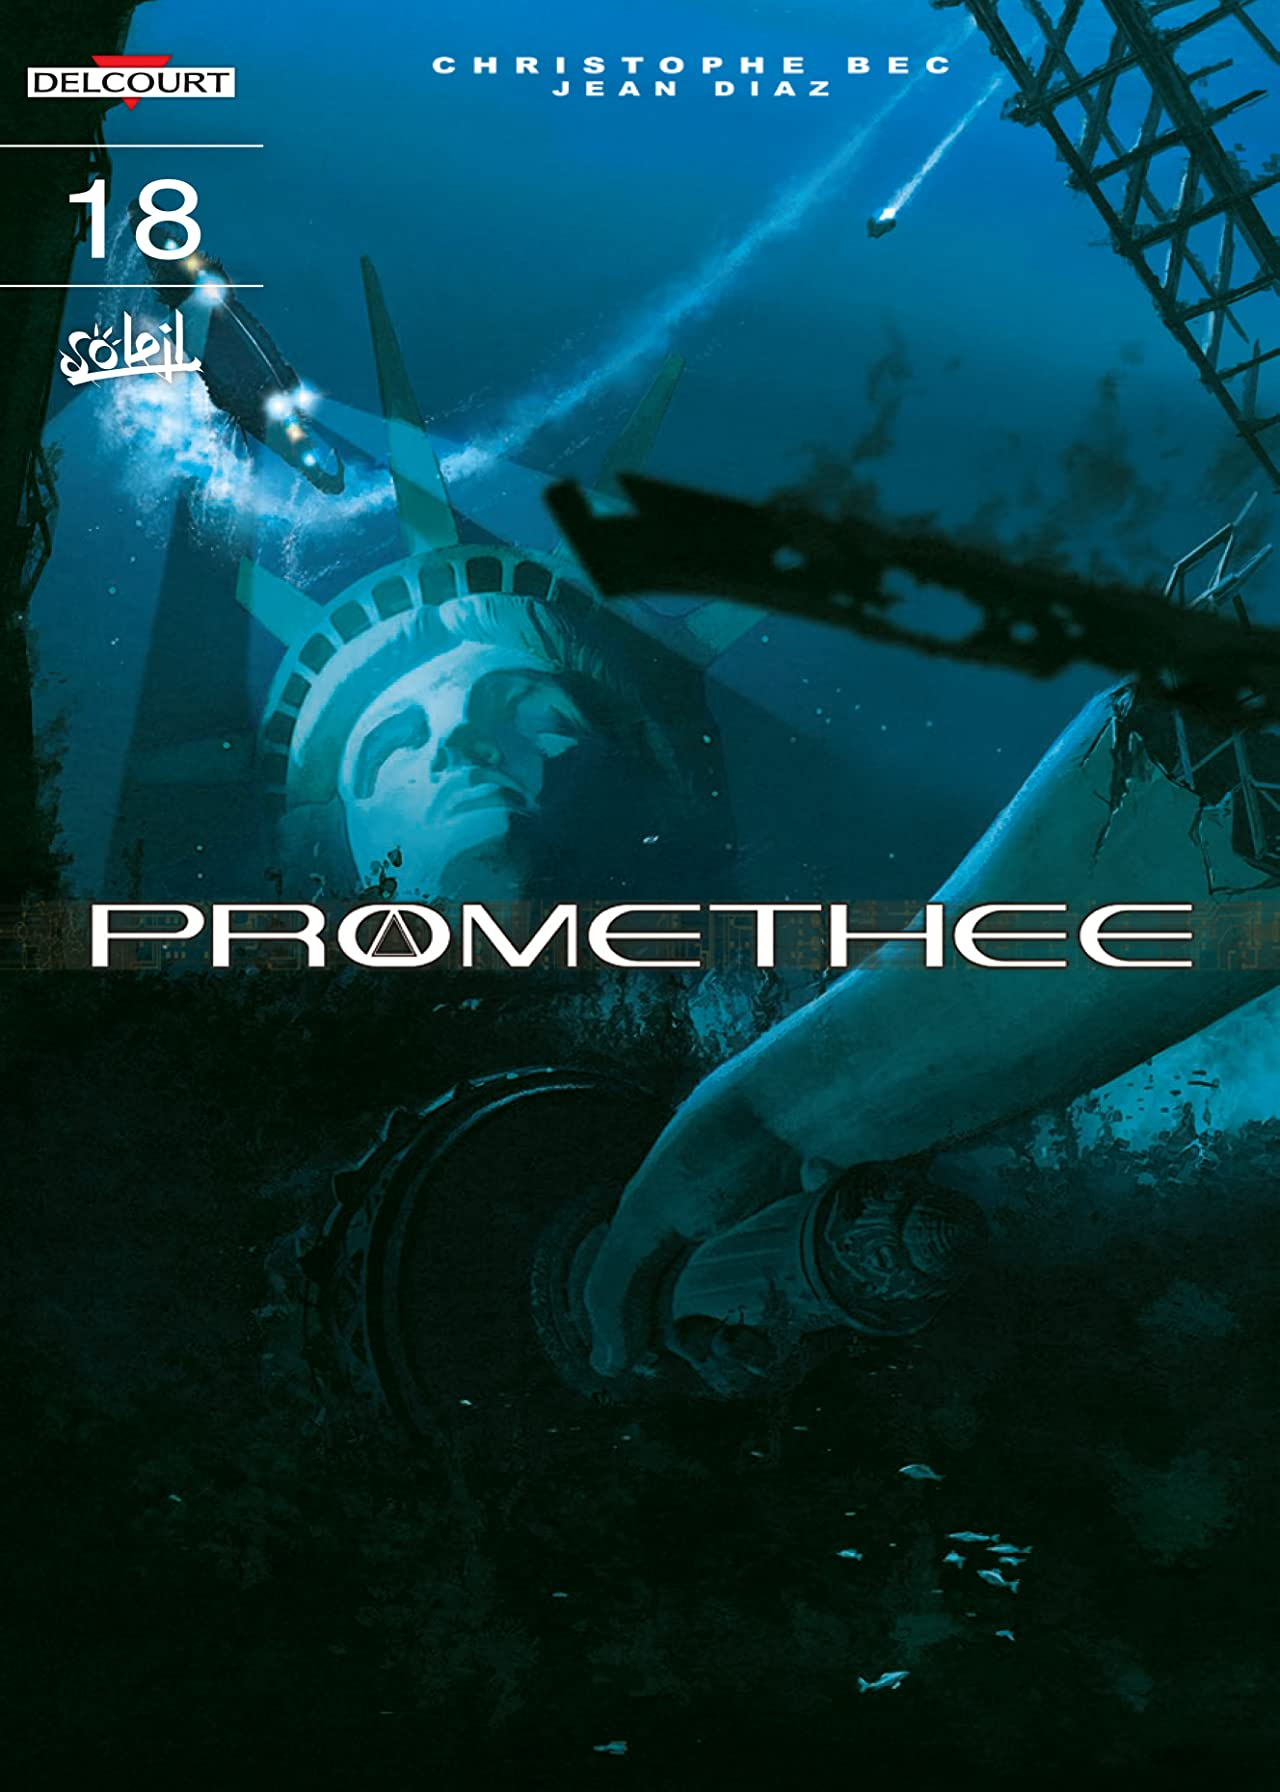 Promethee Vol. 18: The Theory of the Grain of Sand